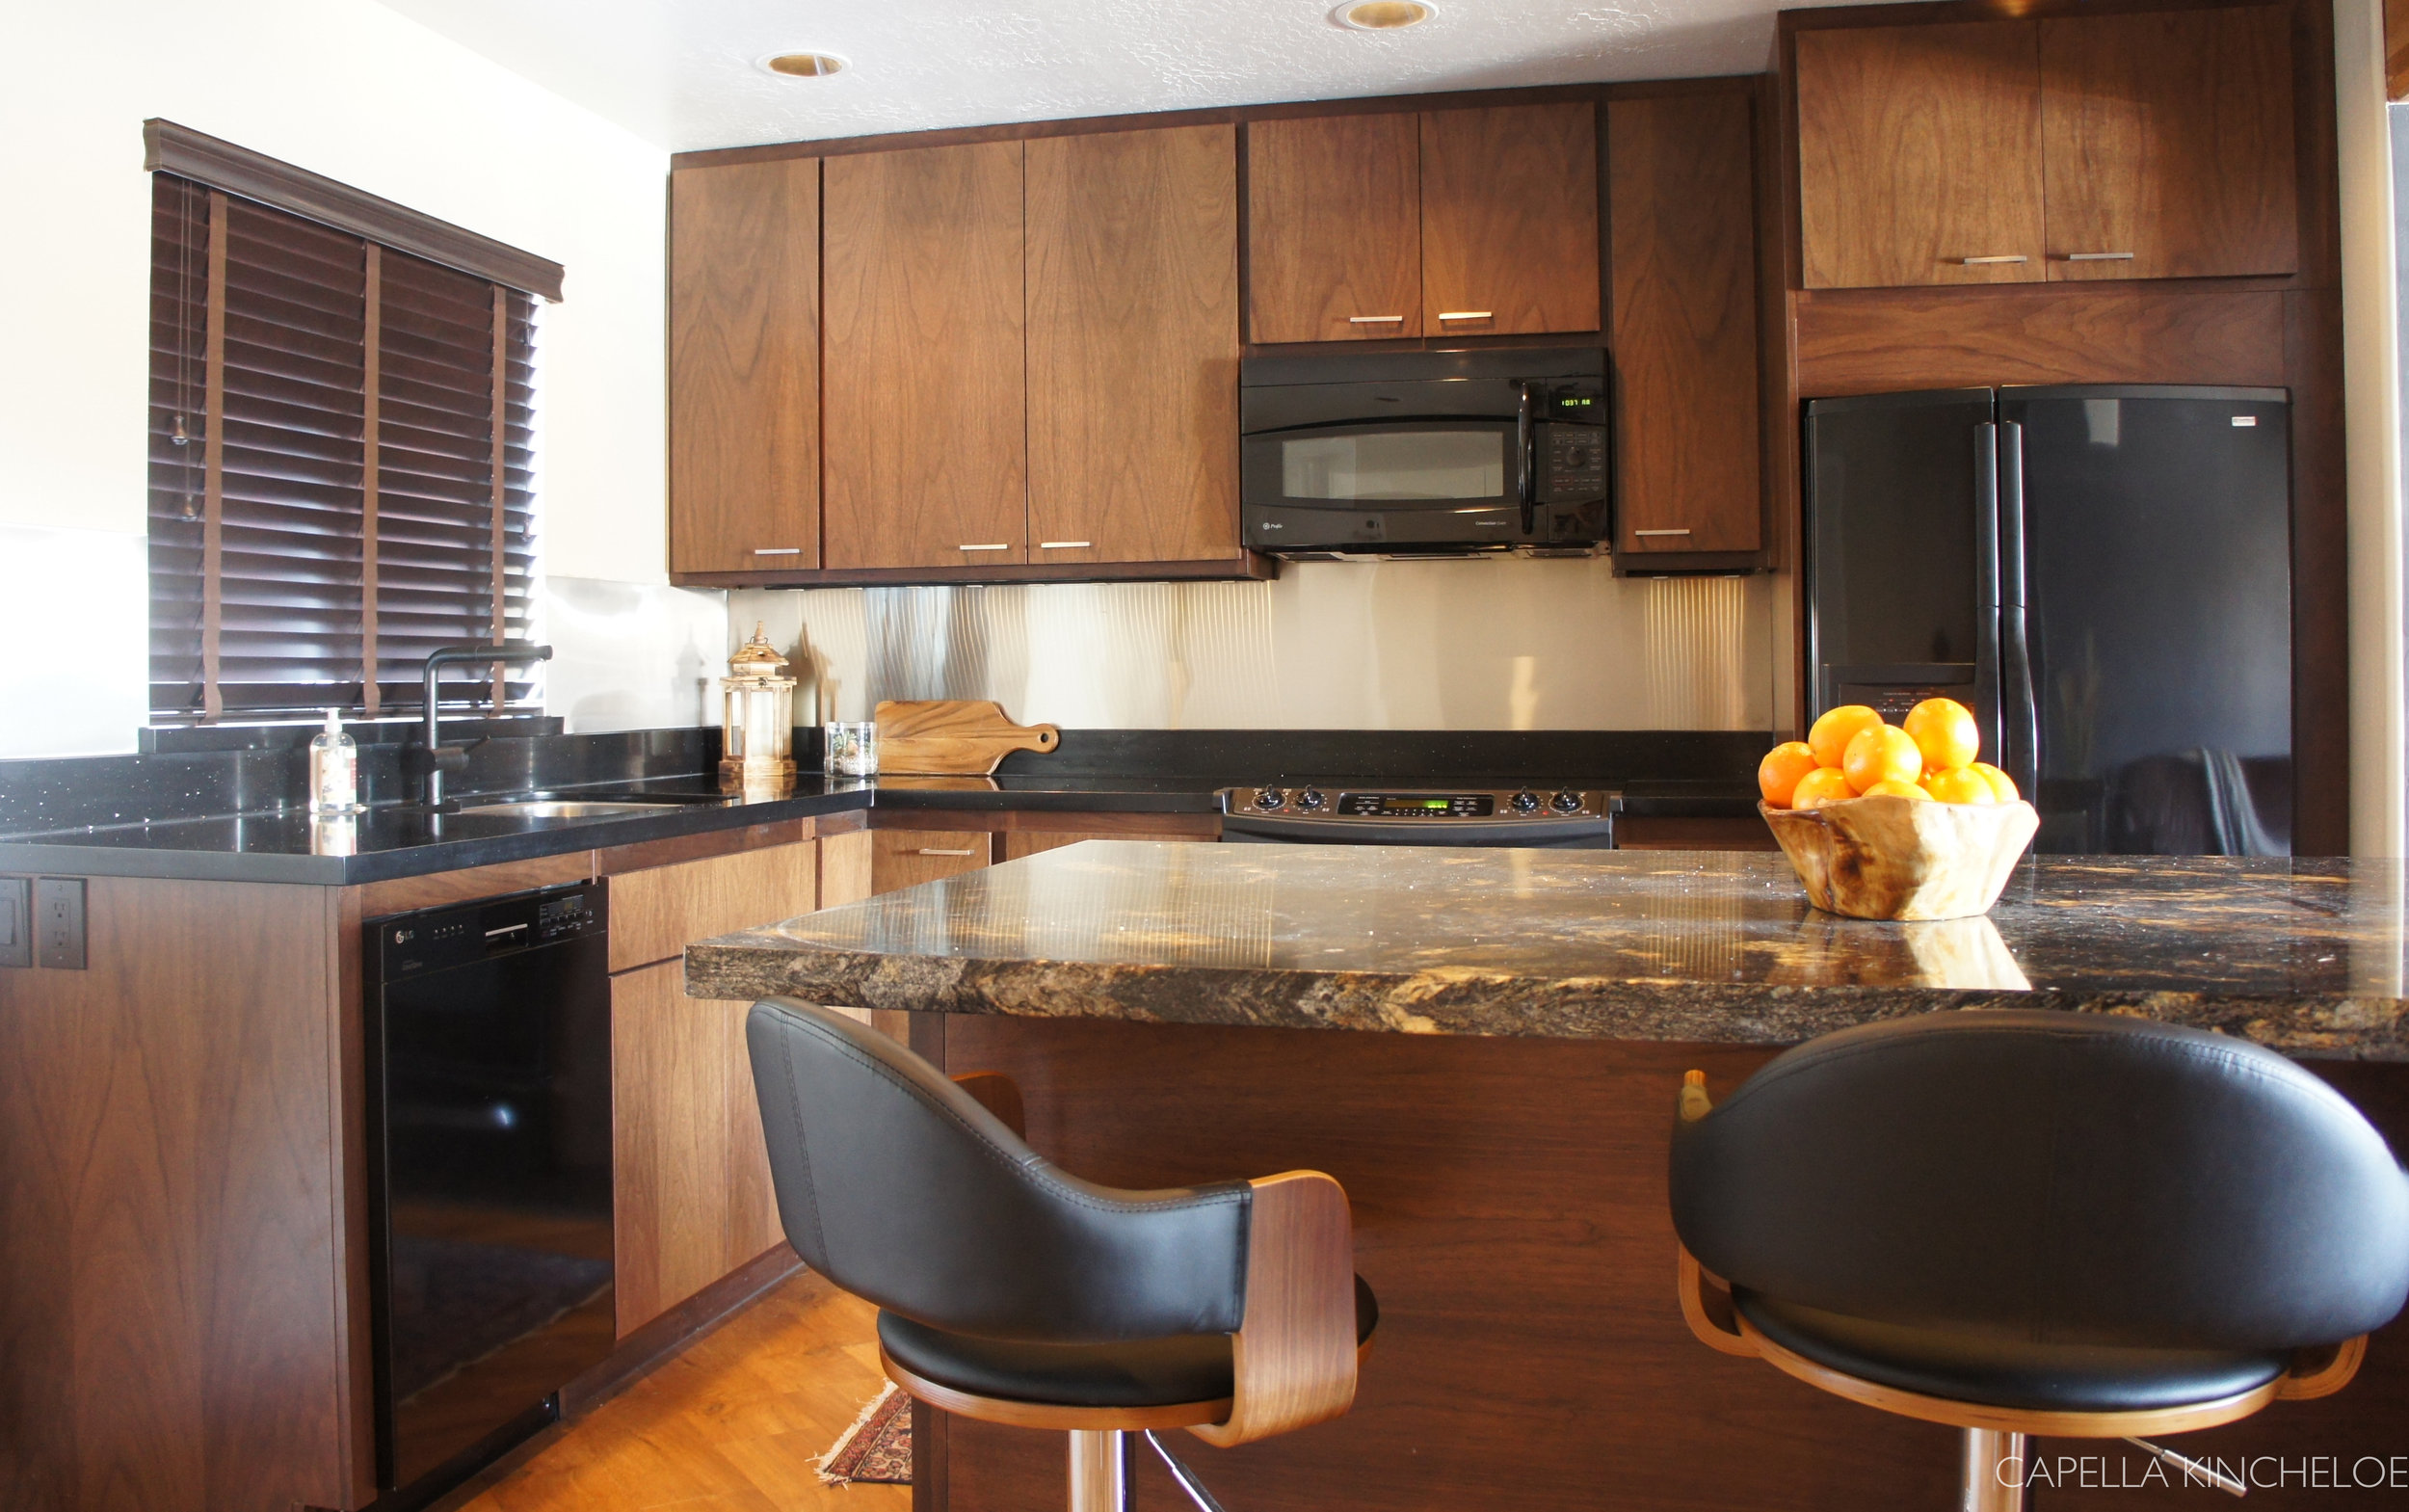 bachelor kitchen, European walnut cabinets, black granite, masculine kitchen, stainless steel backsplash